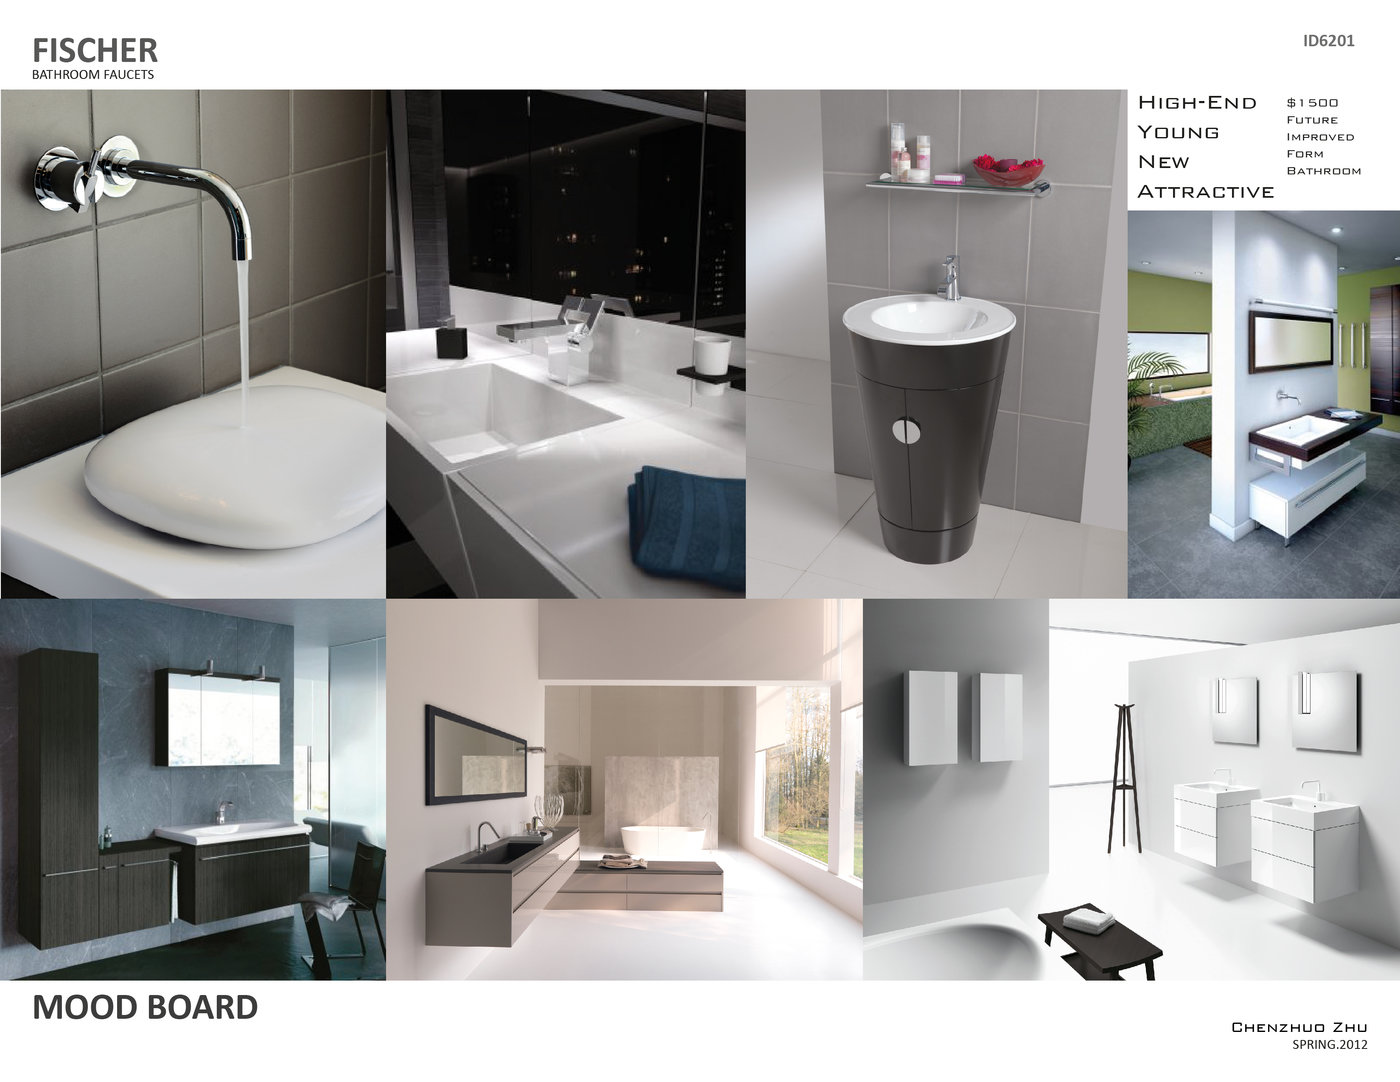 Faucet DesignGaTech MID By Chenzhuo George Zhu At Coroflotcom - Retail bathroom fixtures